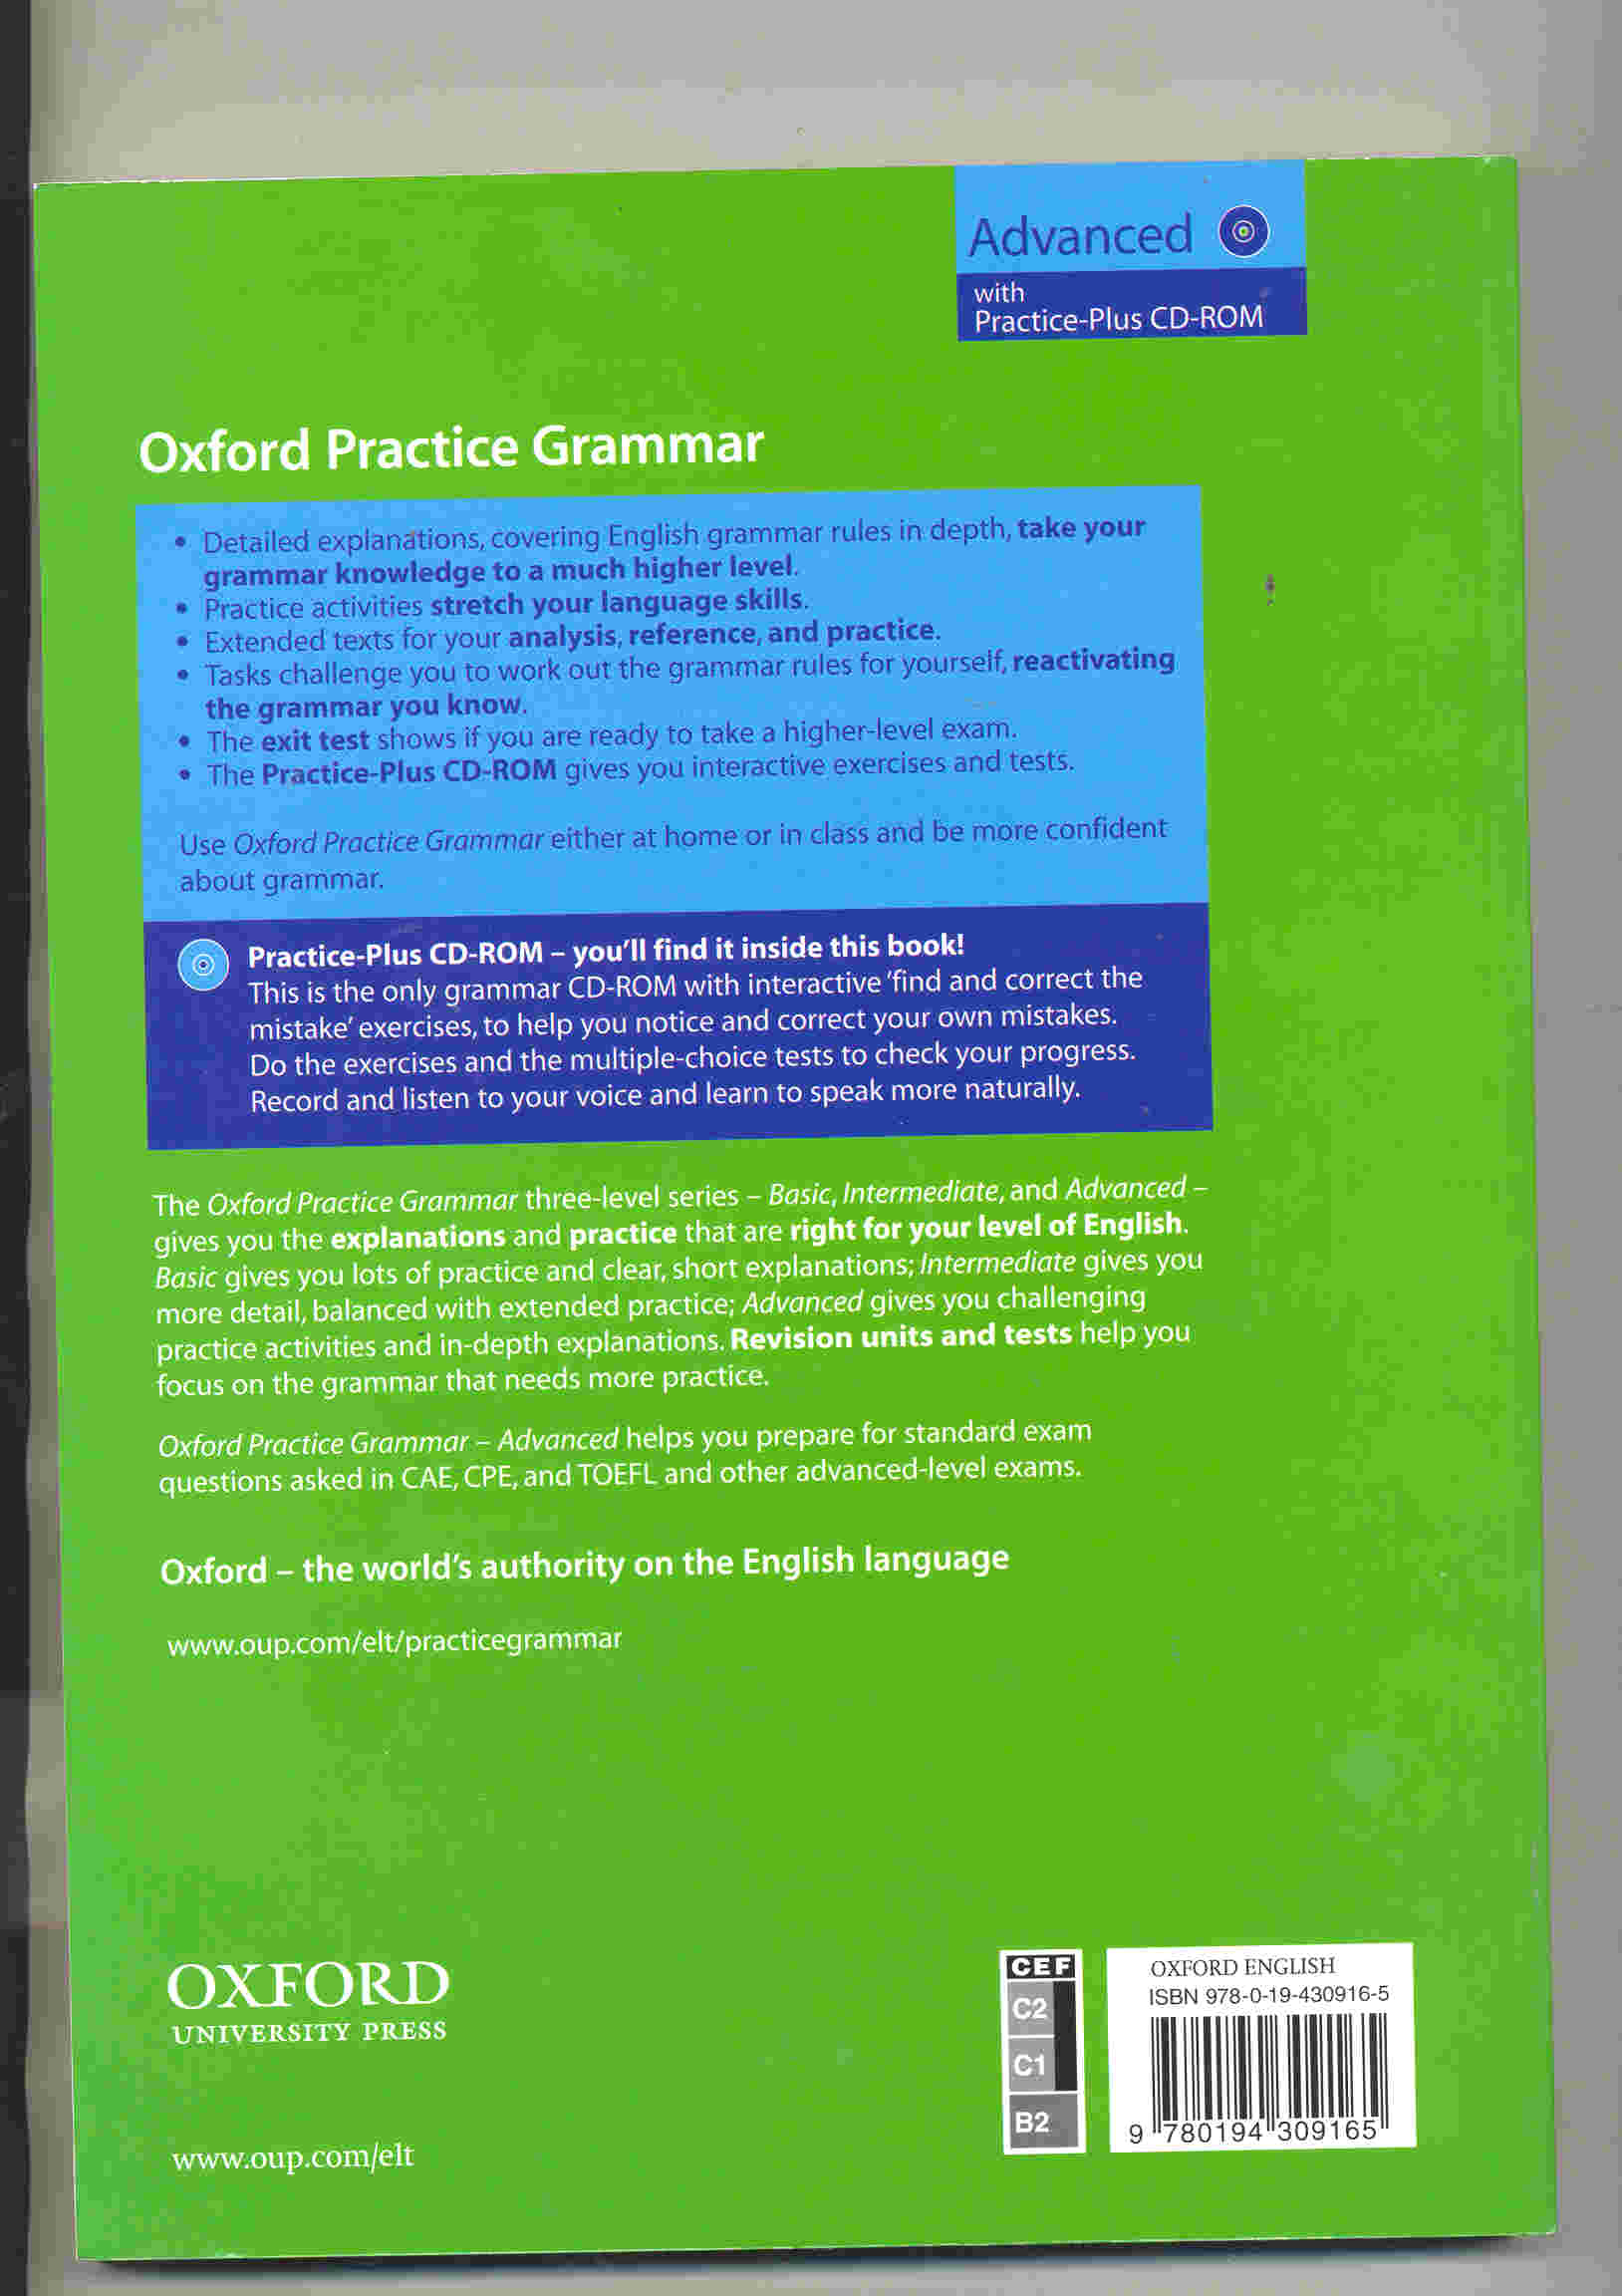 Holdings: Oxford practice grammar with answers